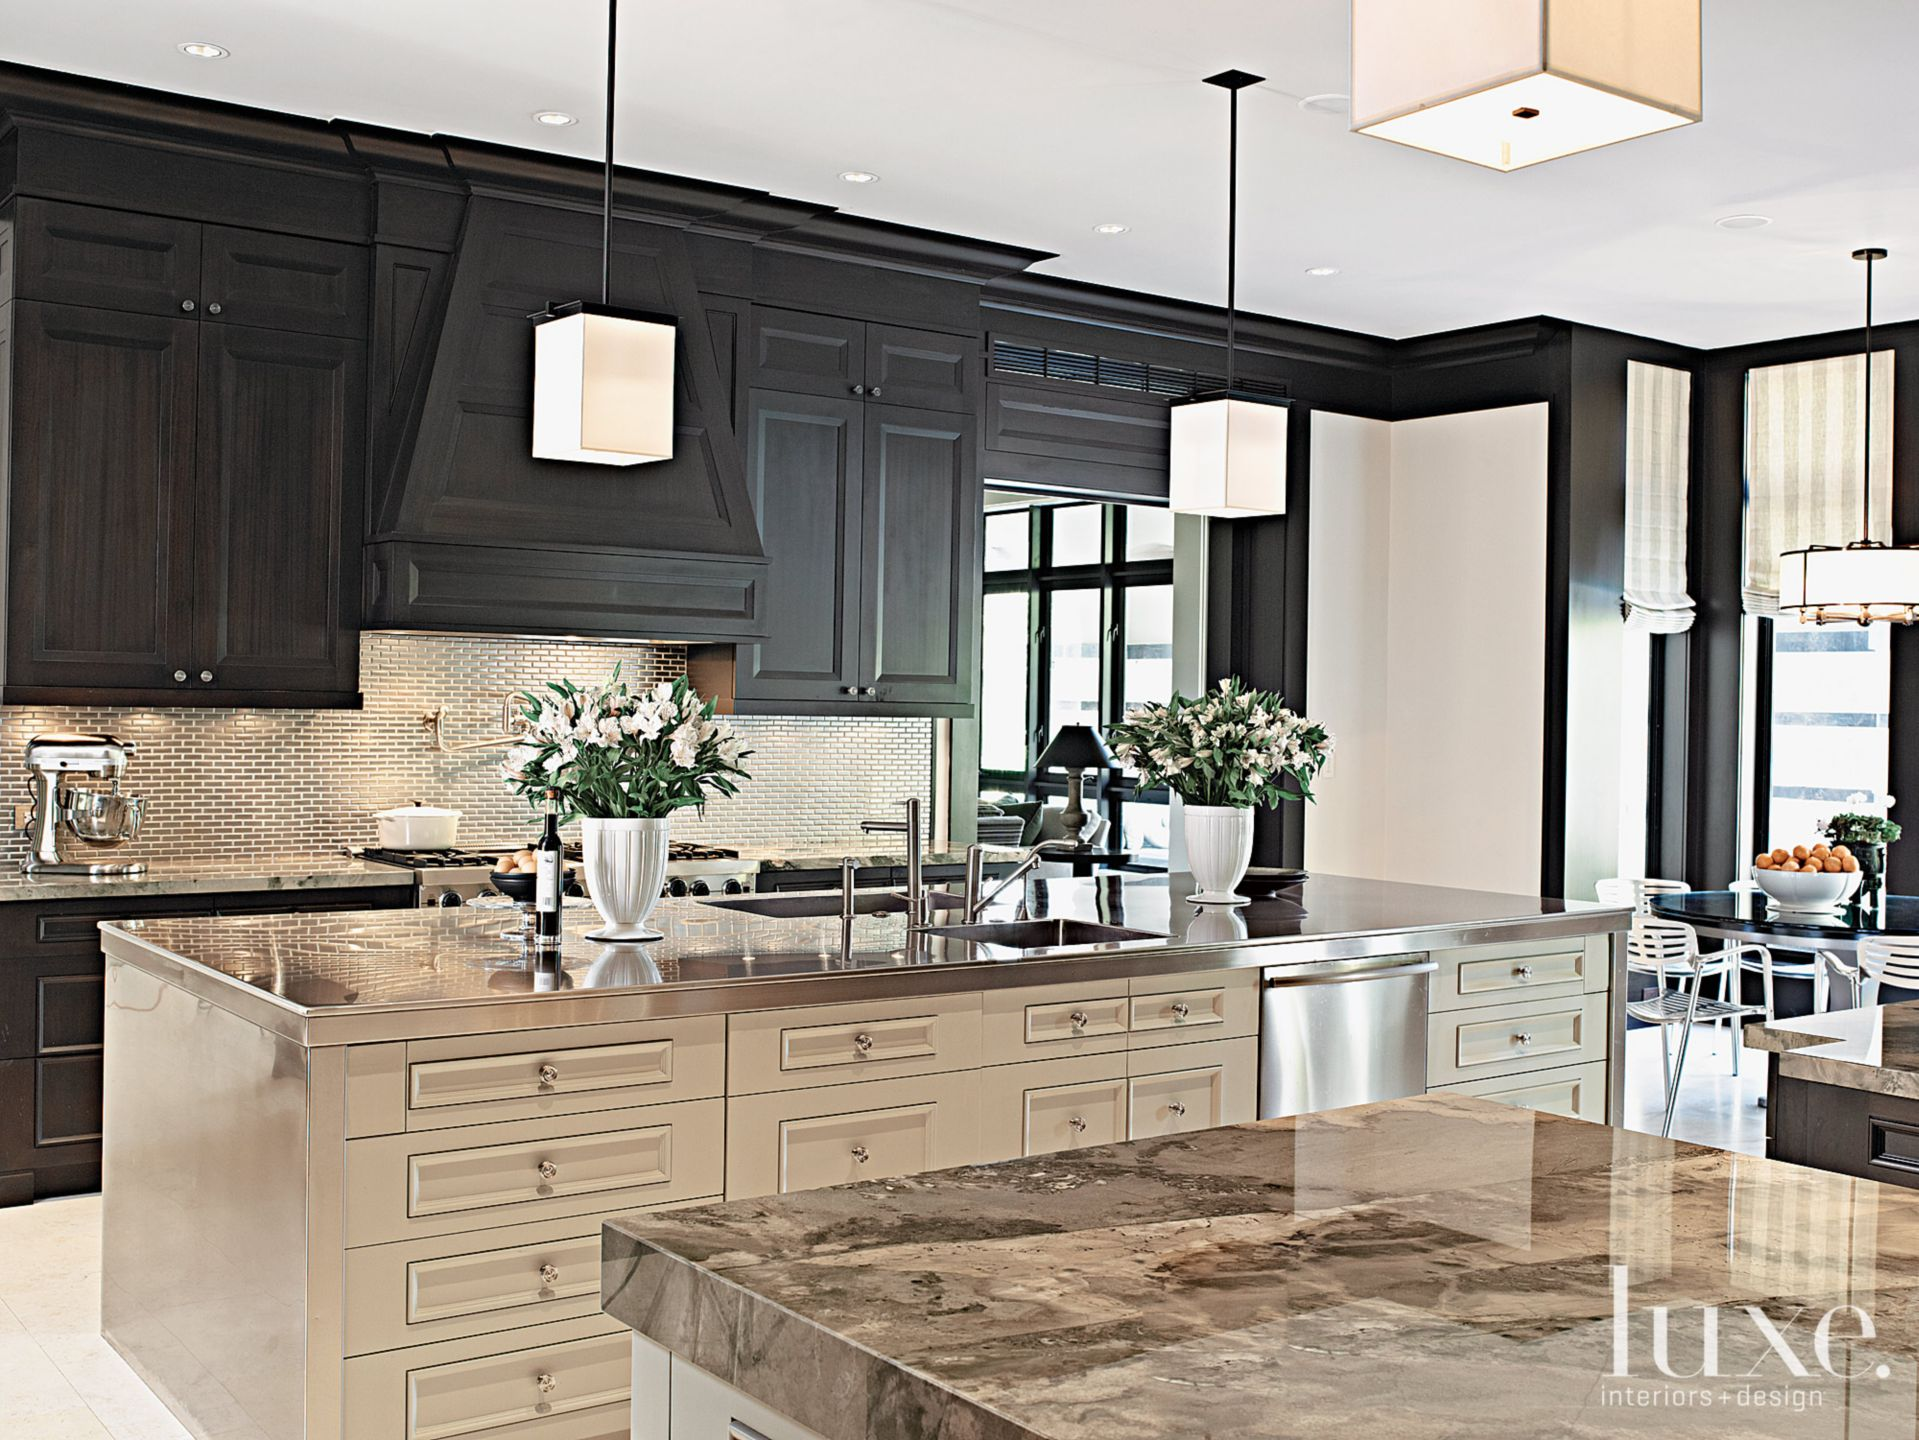 Contemporary Cream Kitchen with Geometric Pendants